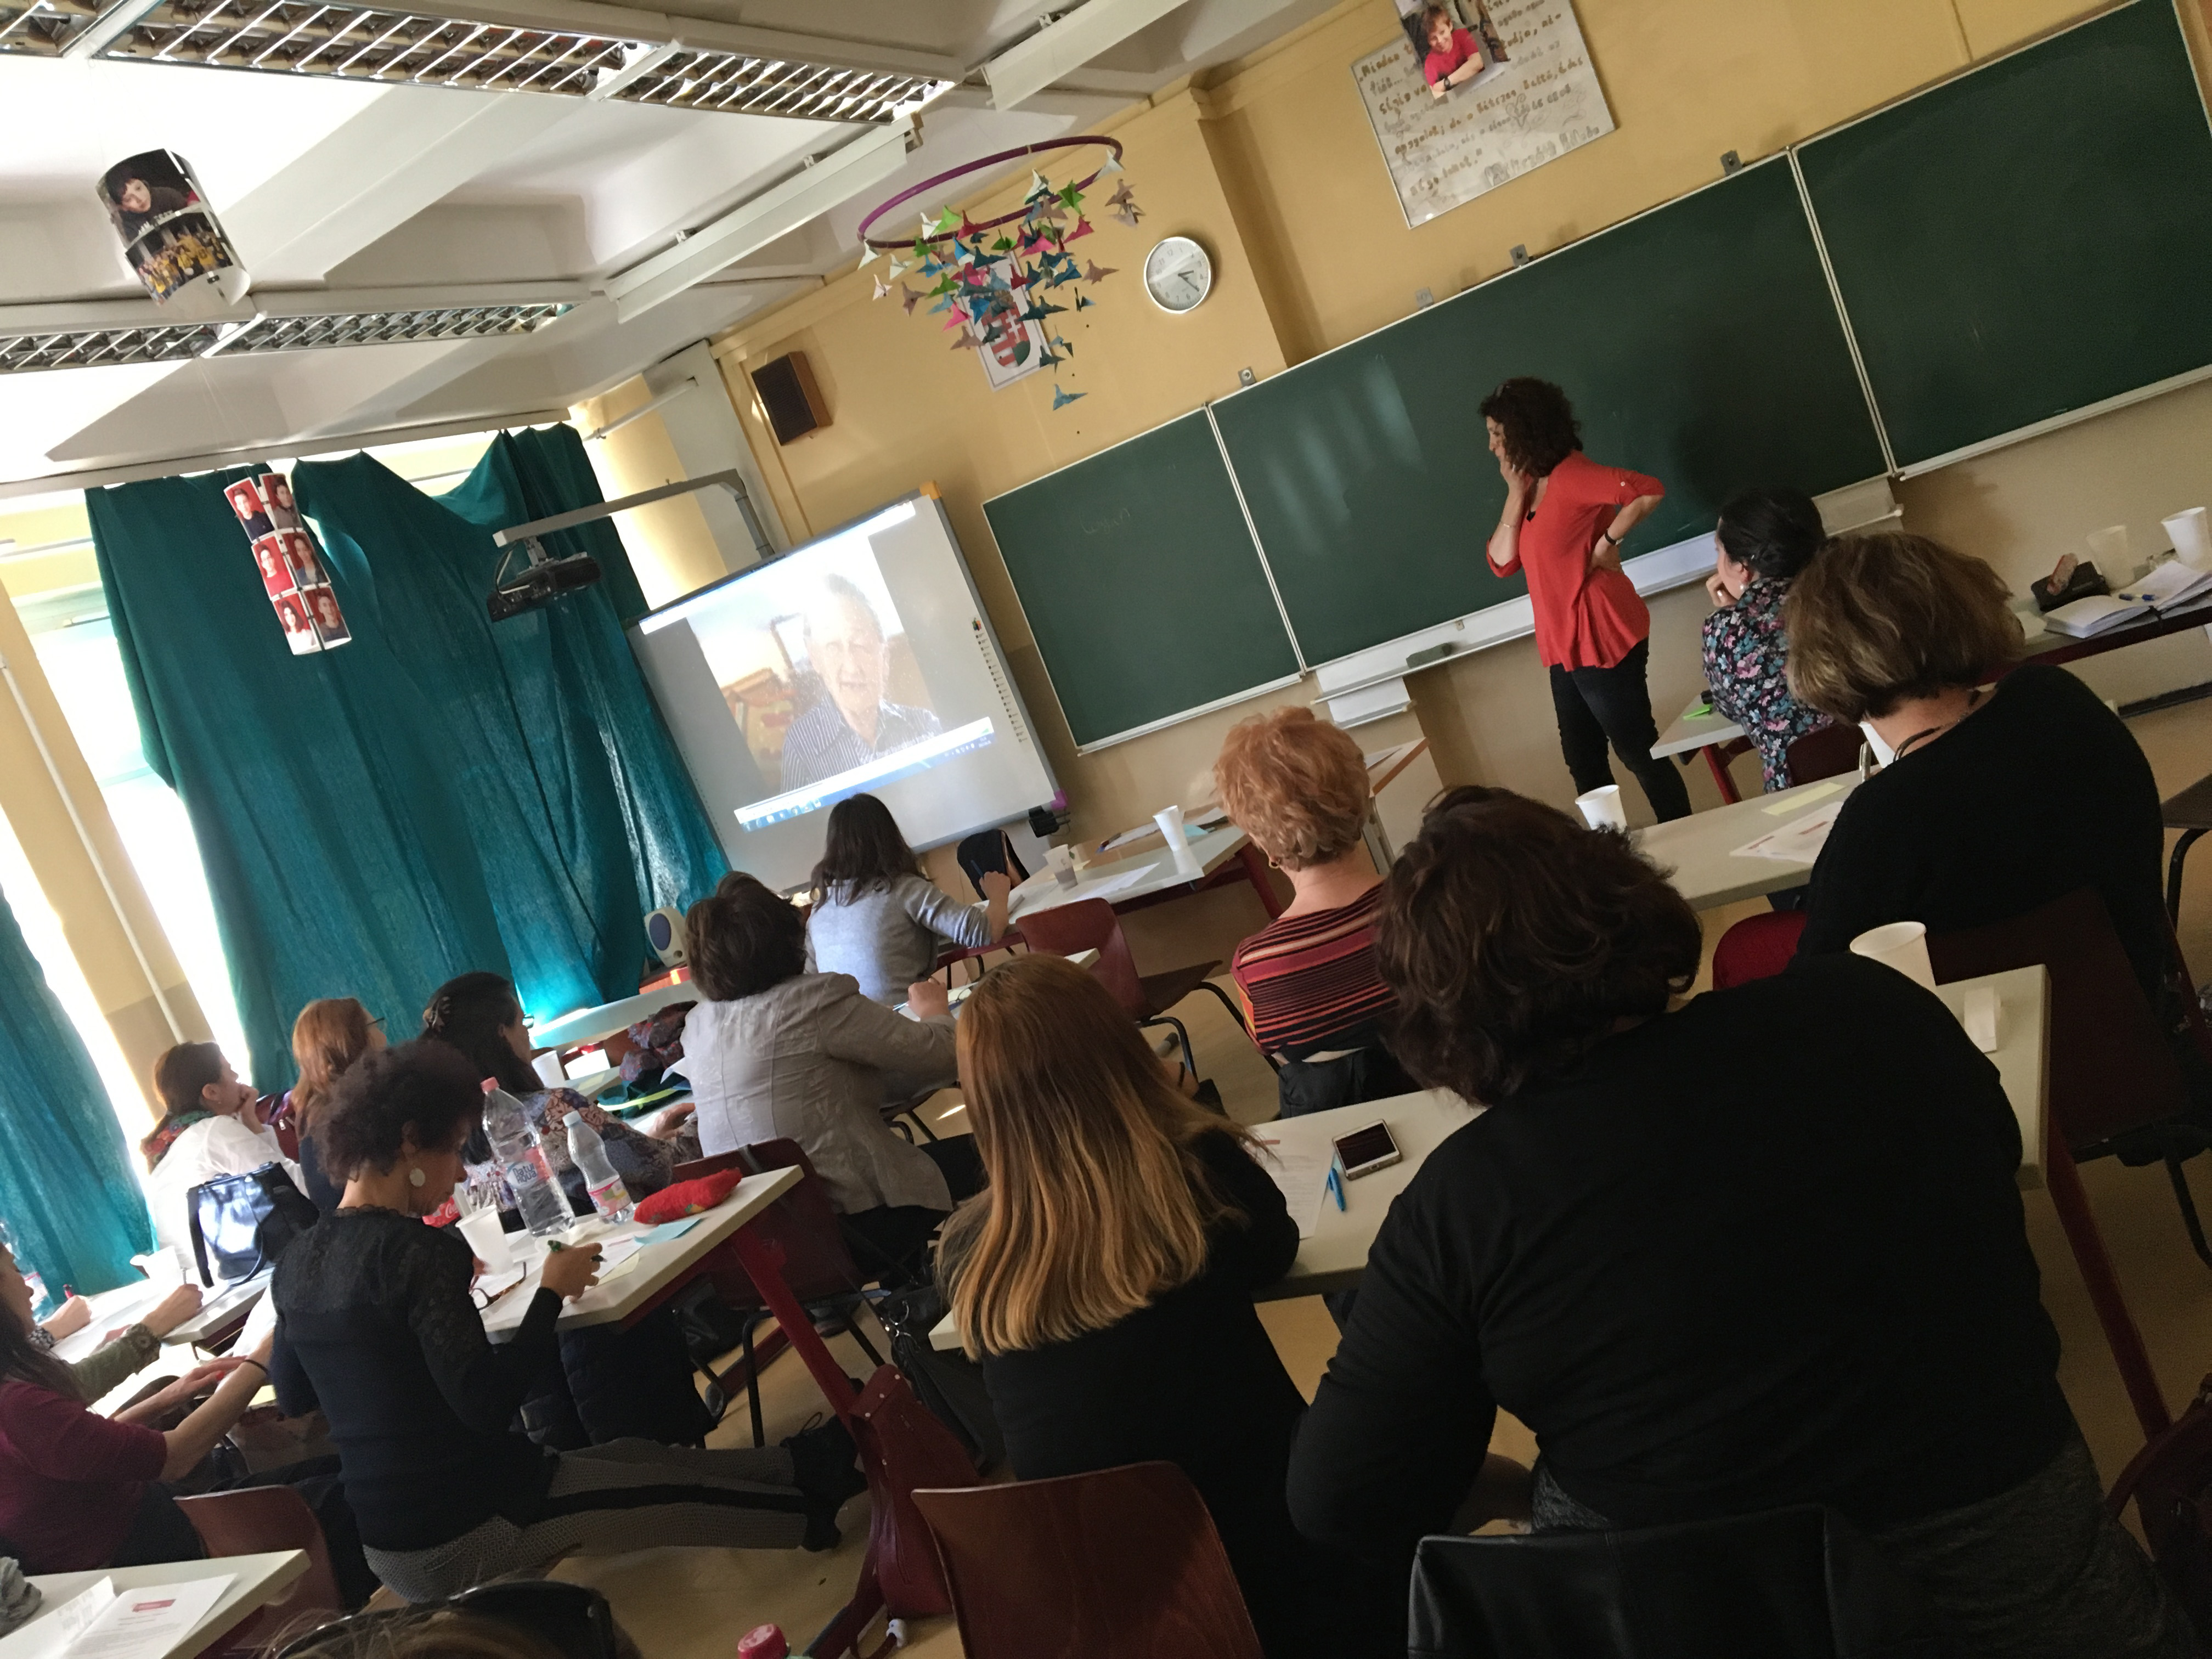 Andrea Szonyi leads the educators in the new IWitness activity